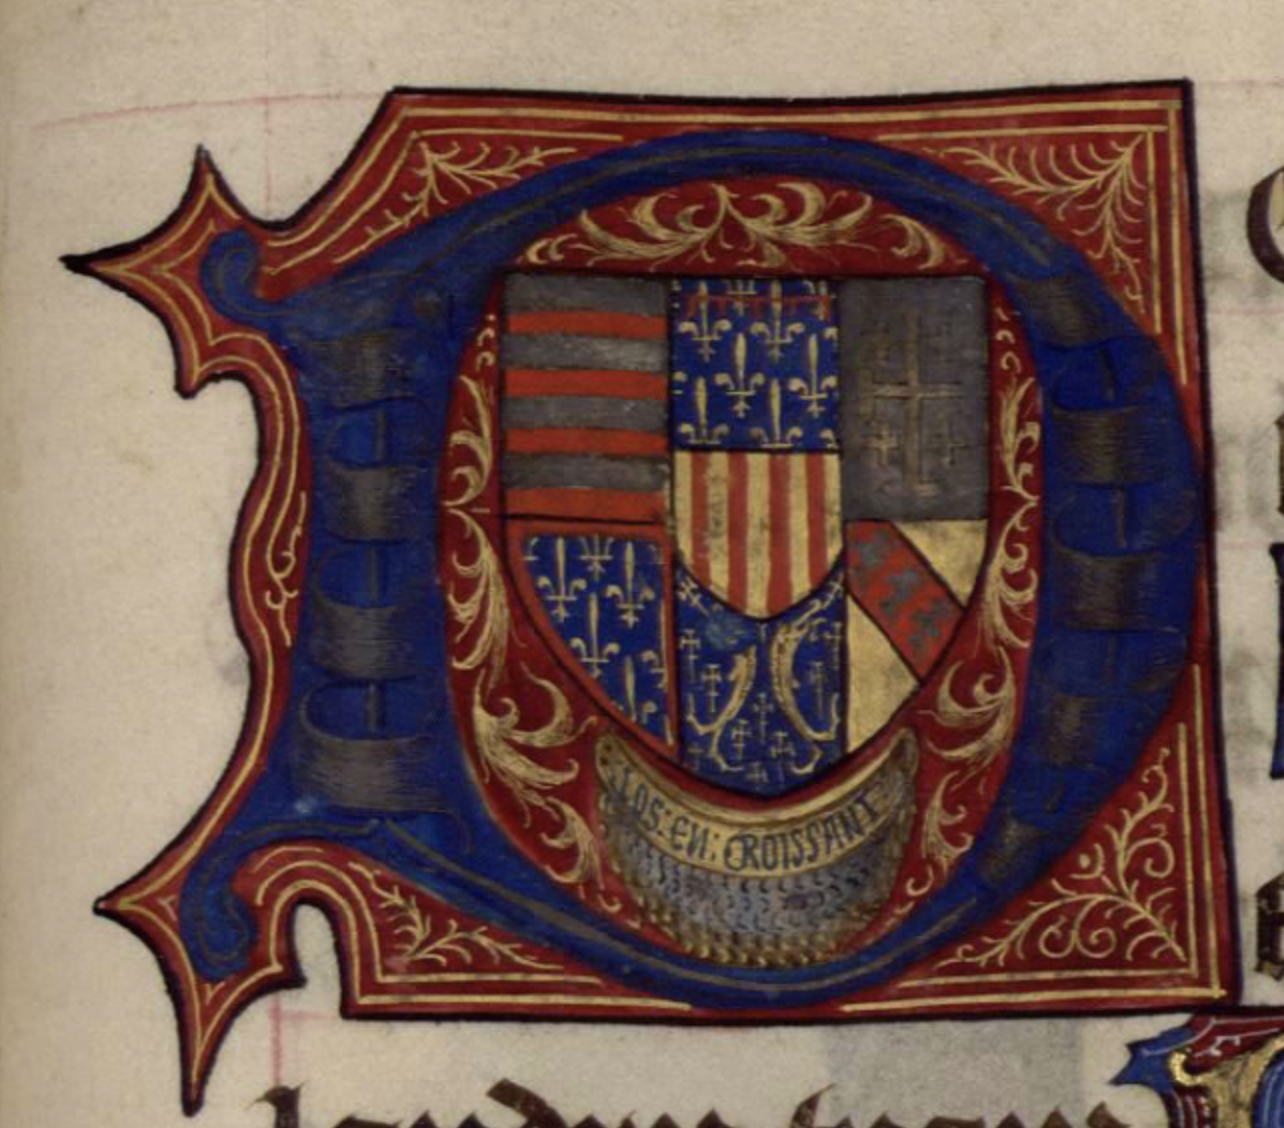 """A large champ initial 'D' containing the arms of Rene, as well as a small golden crescent symbol containing the words """"Los en Croissant"""""""